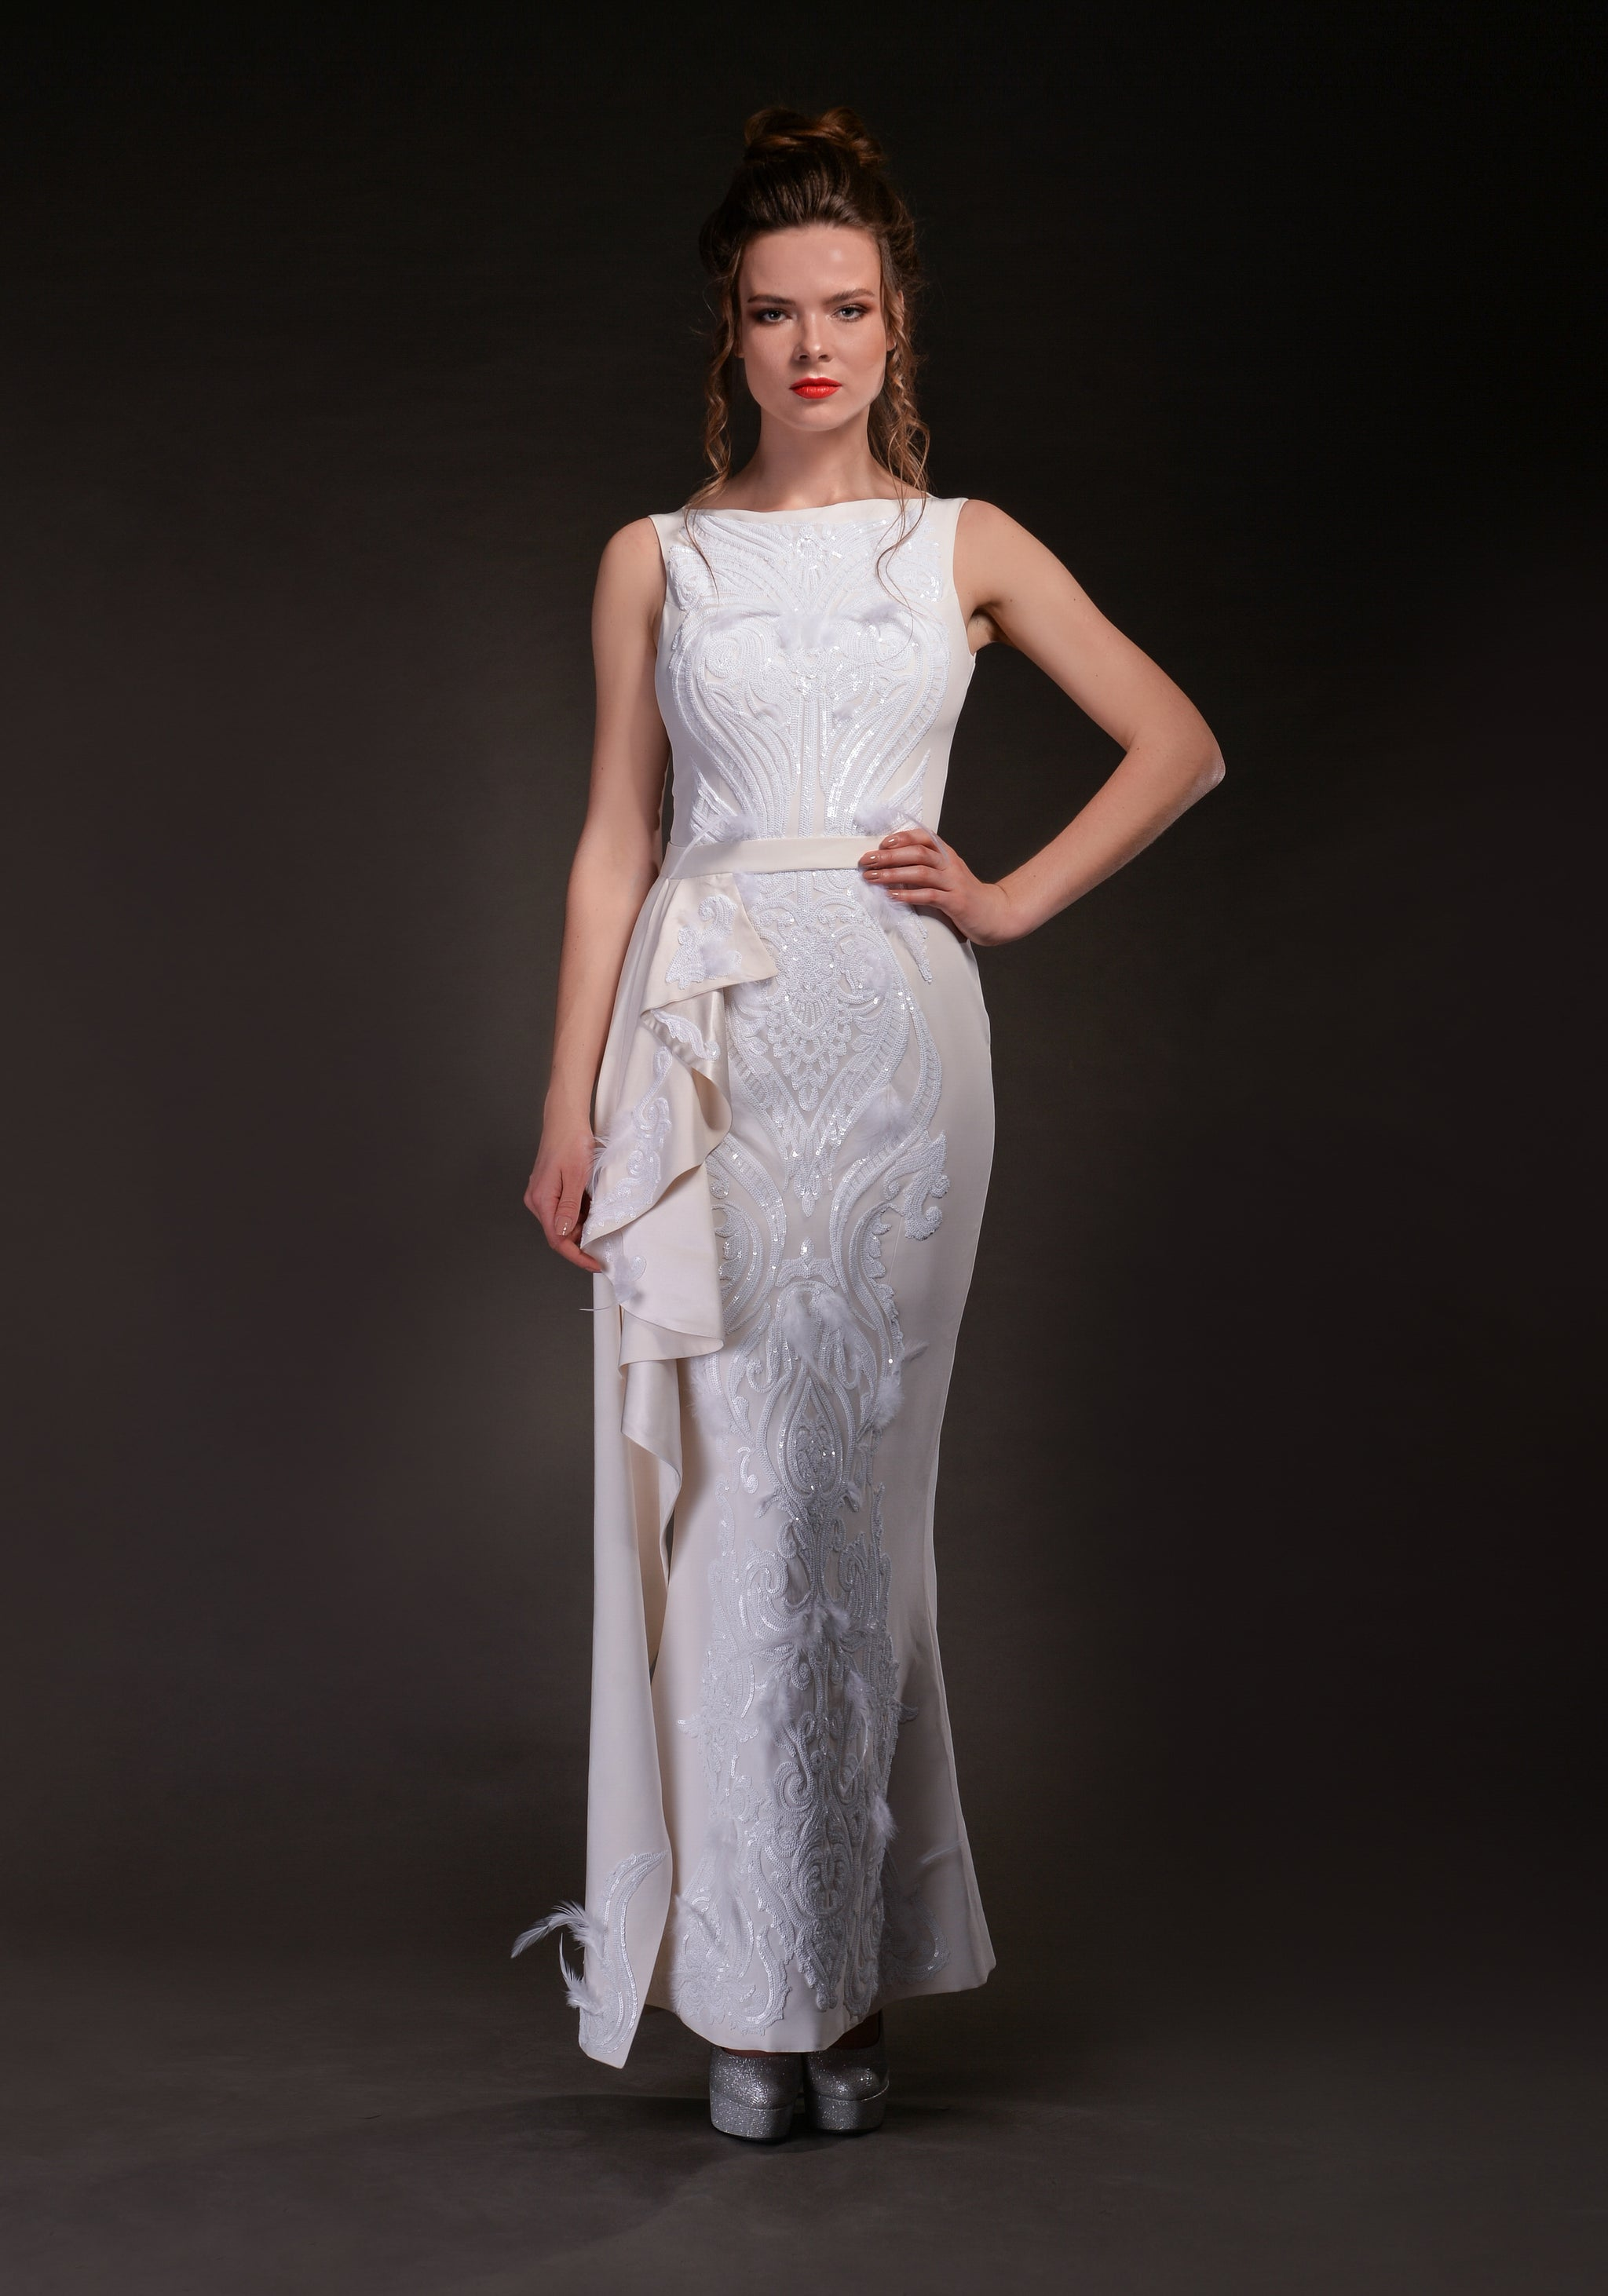 Off-White Silk Gown With Sequins Motifs - Alyona Malai